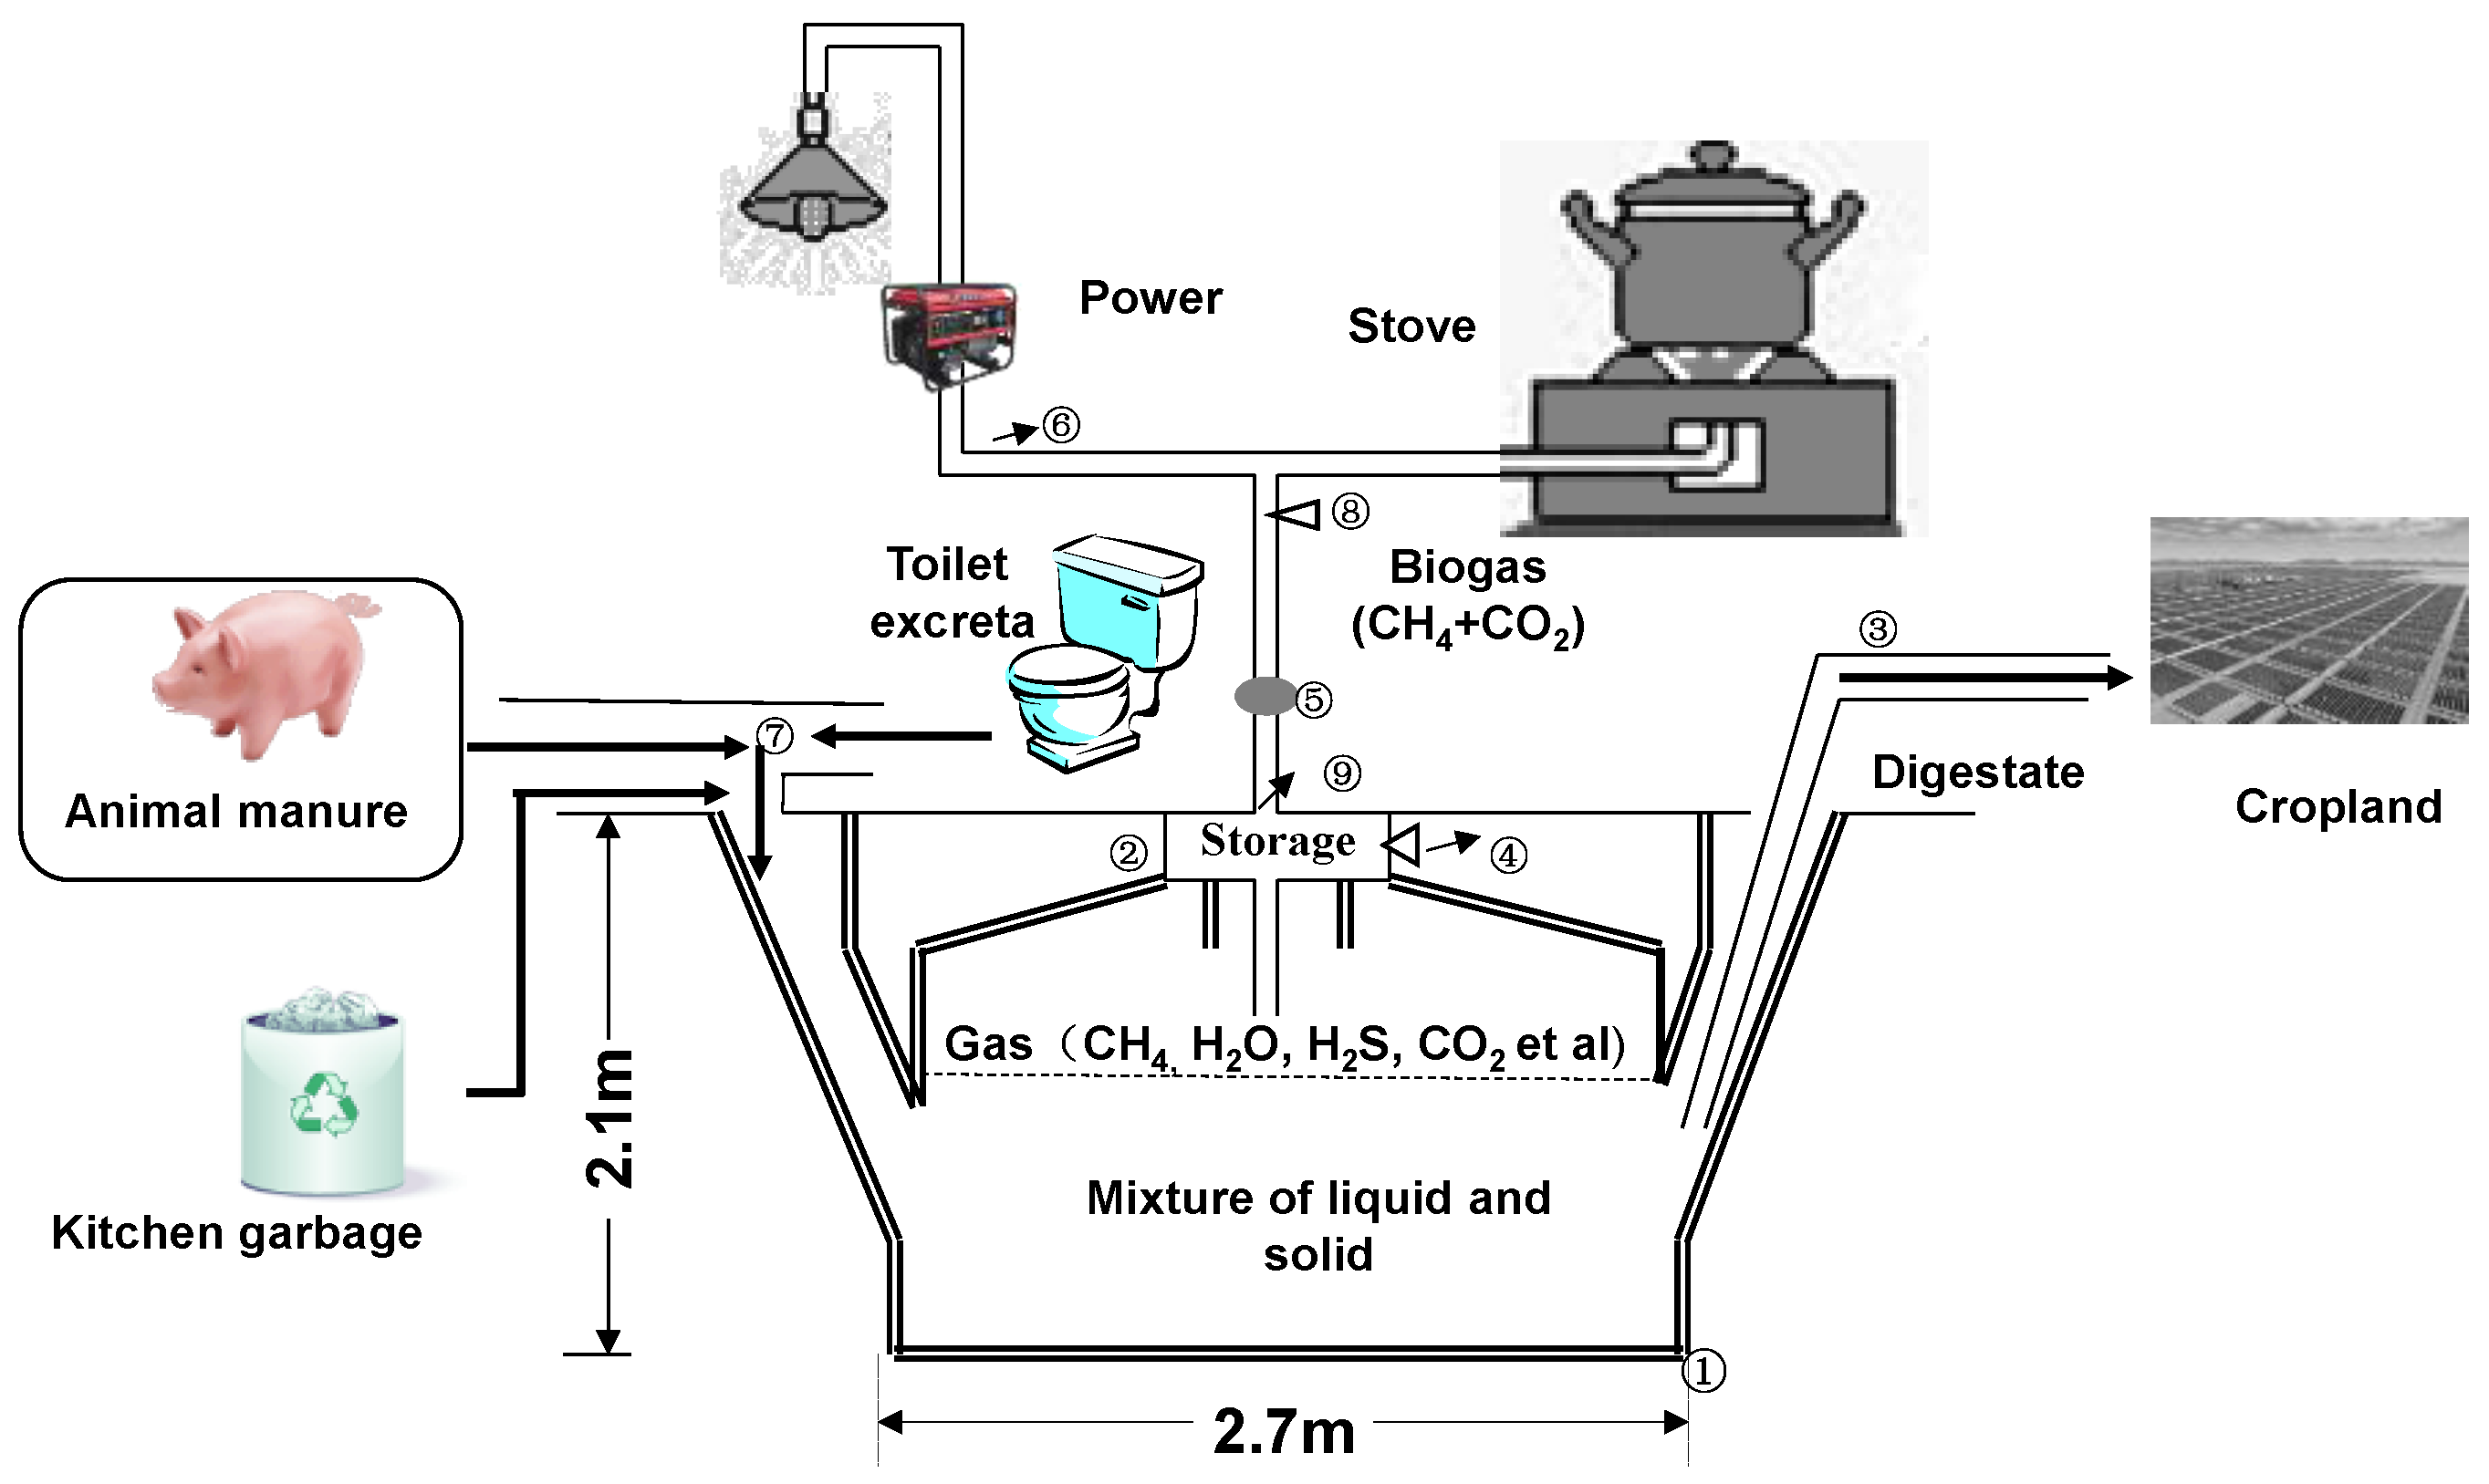 Energies Free Full Text Greenhouse Gas Mitigation Of Rural Biogas Plant Diagram Advantages Digester Generation 10 00239 G001